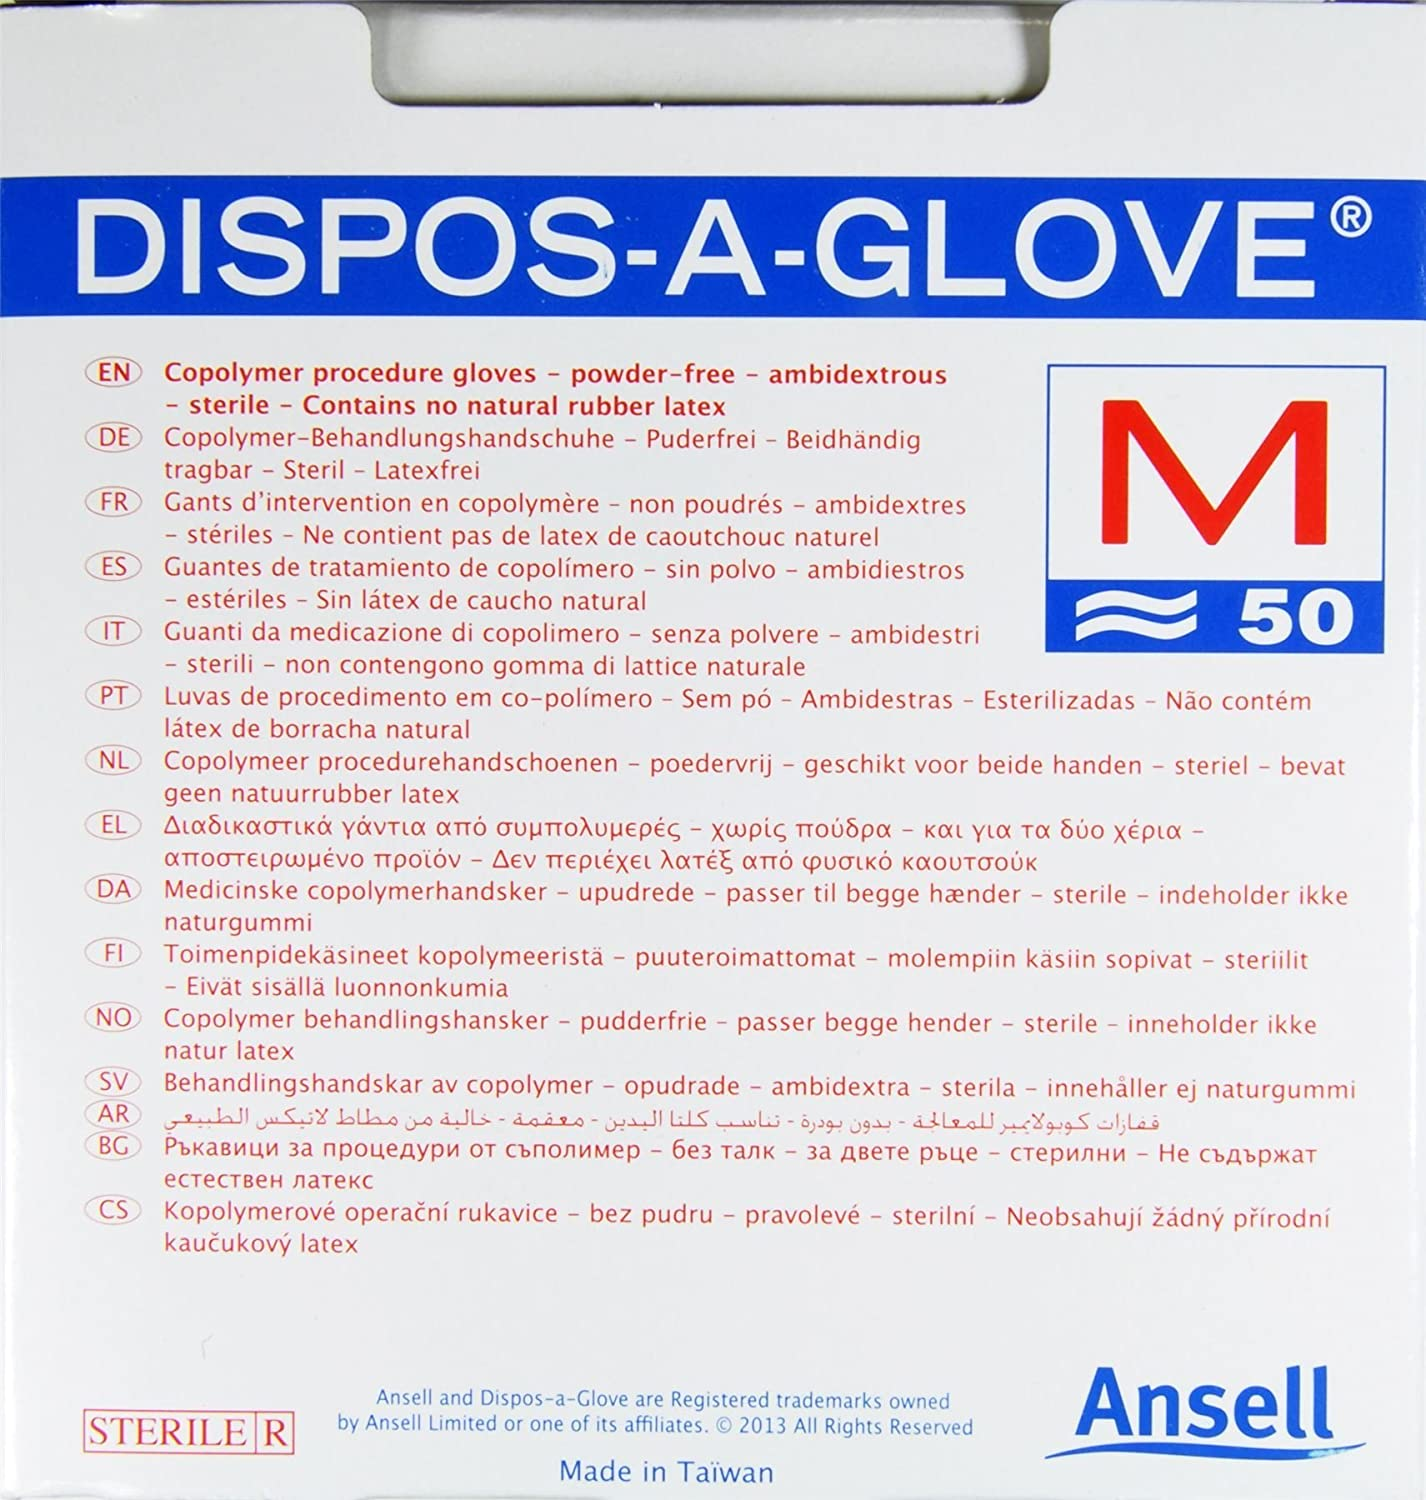 Ansell Dispos-A-Glove, Powder Free Examination Gloves, Sterile, Medium, Box of 50